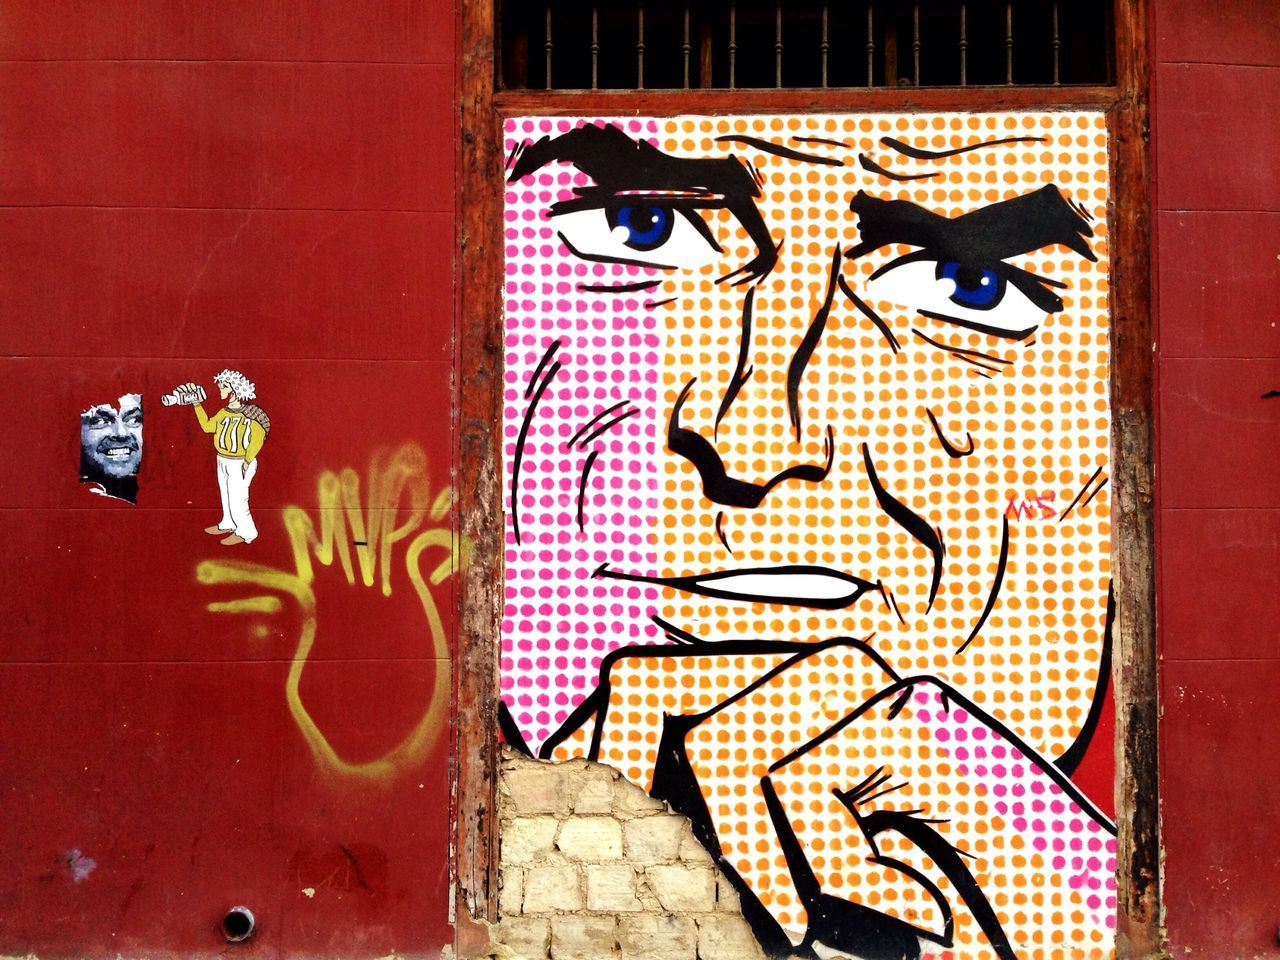 graffiti, art and craft, creativity, wall - building feature, built structure, architecture, human representation, street art, building exterior, outdoors, no people, day, window, communication, close-up